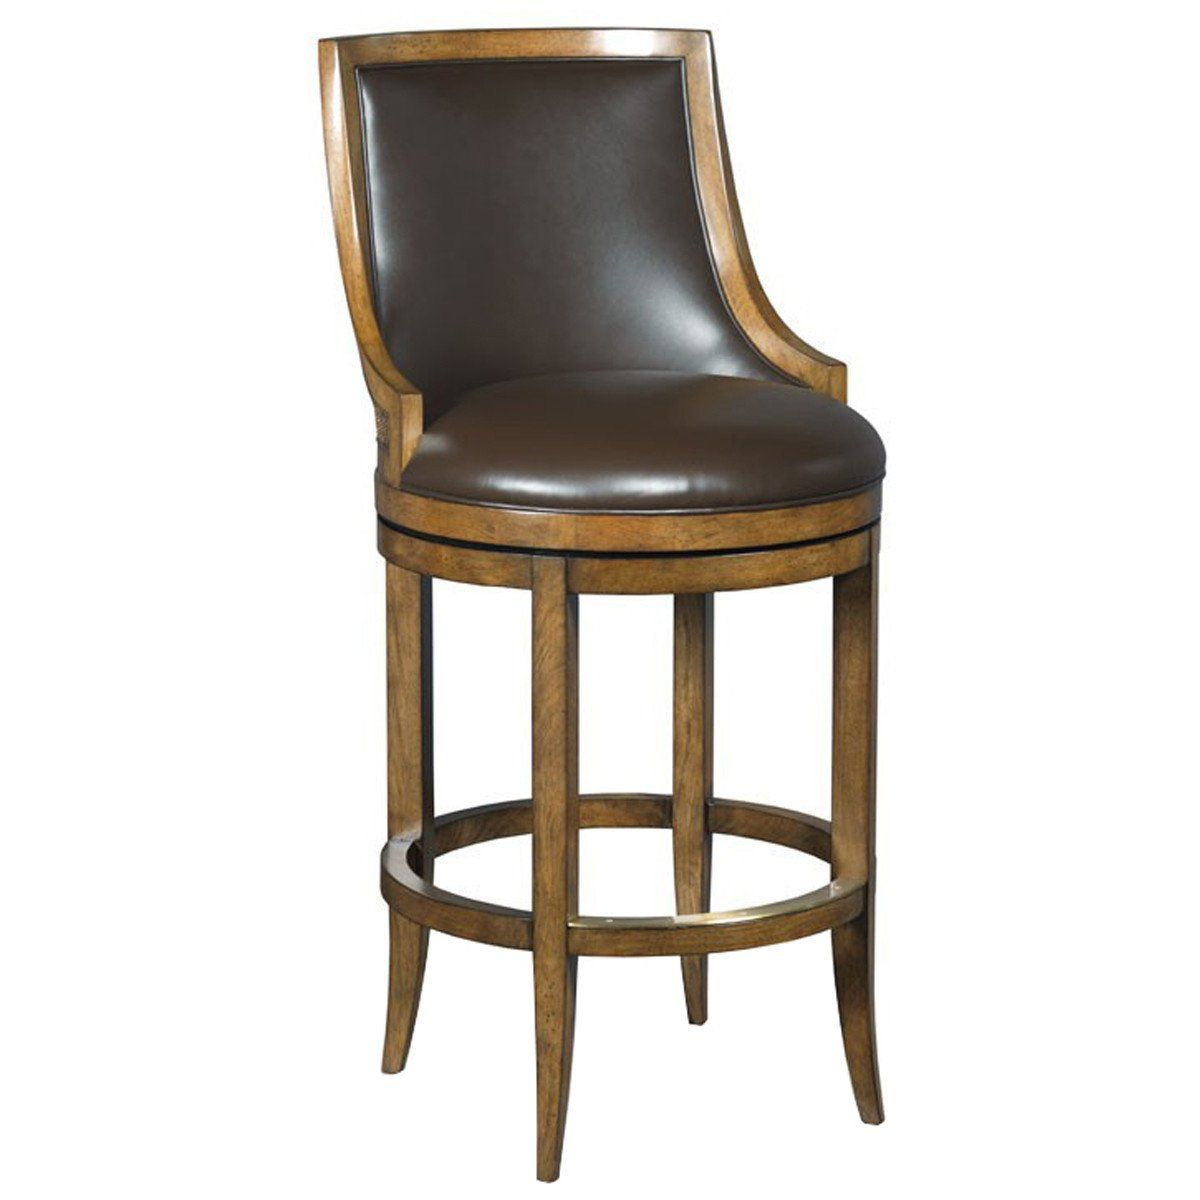 Woodbridge Furniture Redding Bar Stool